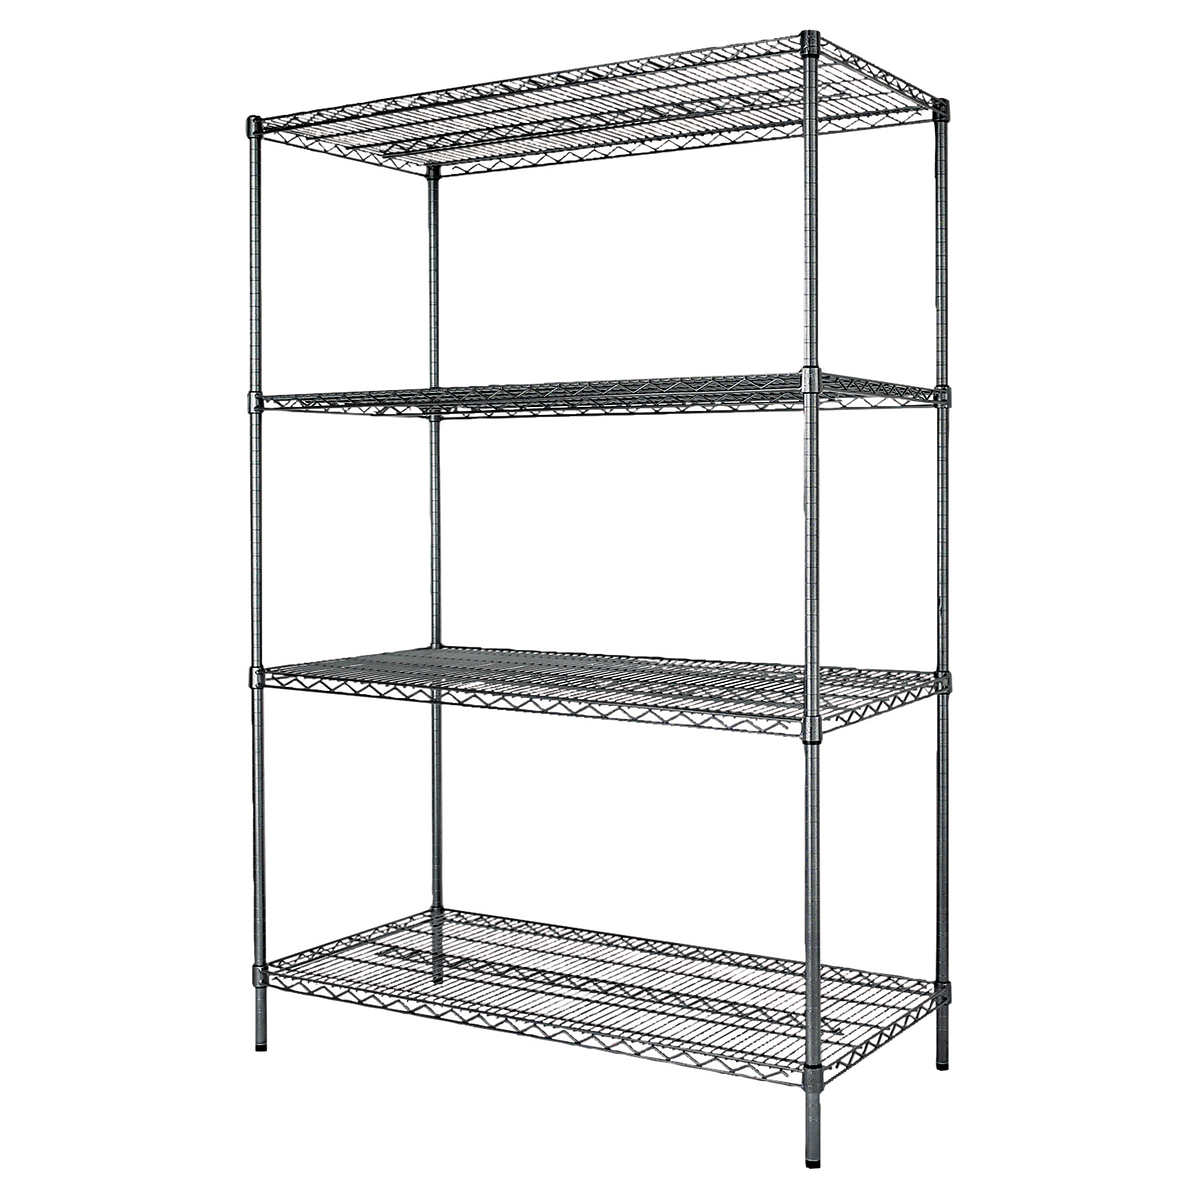 Alera 4-Shelf Wire Rack 48